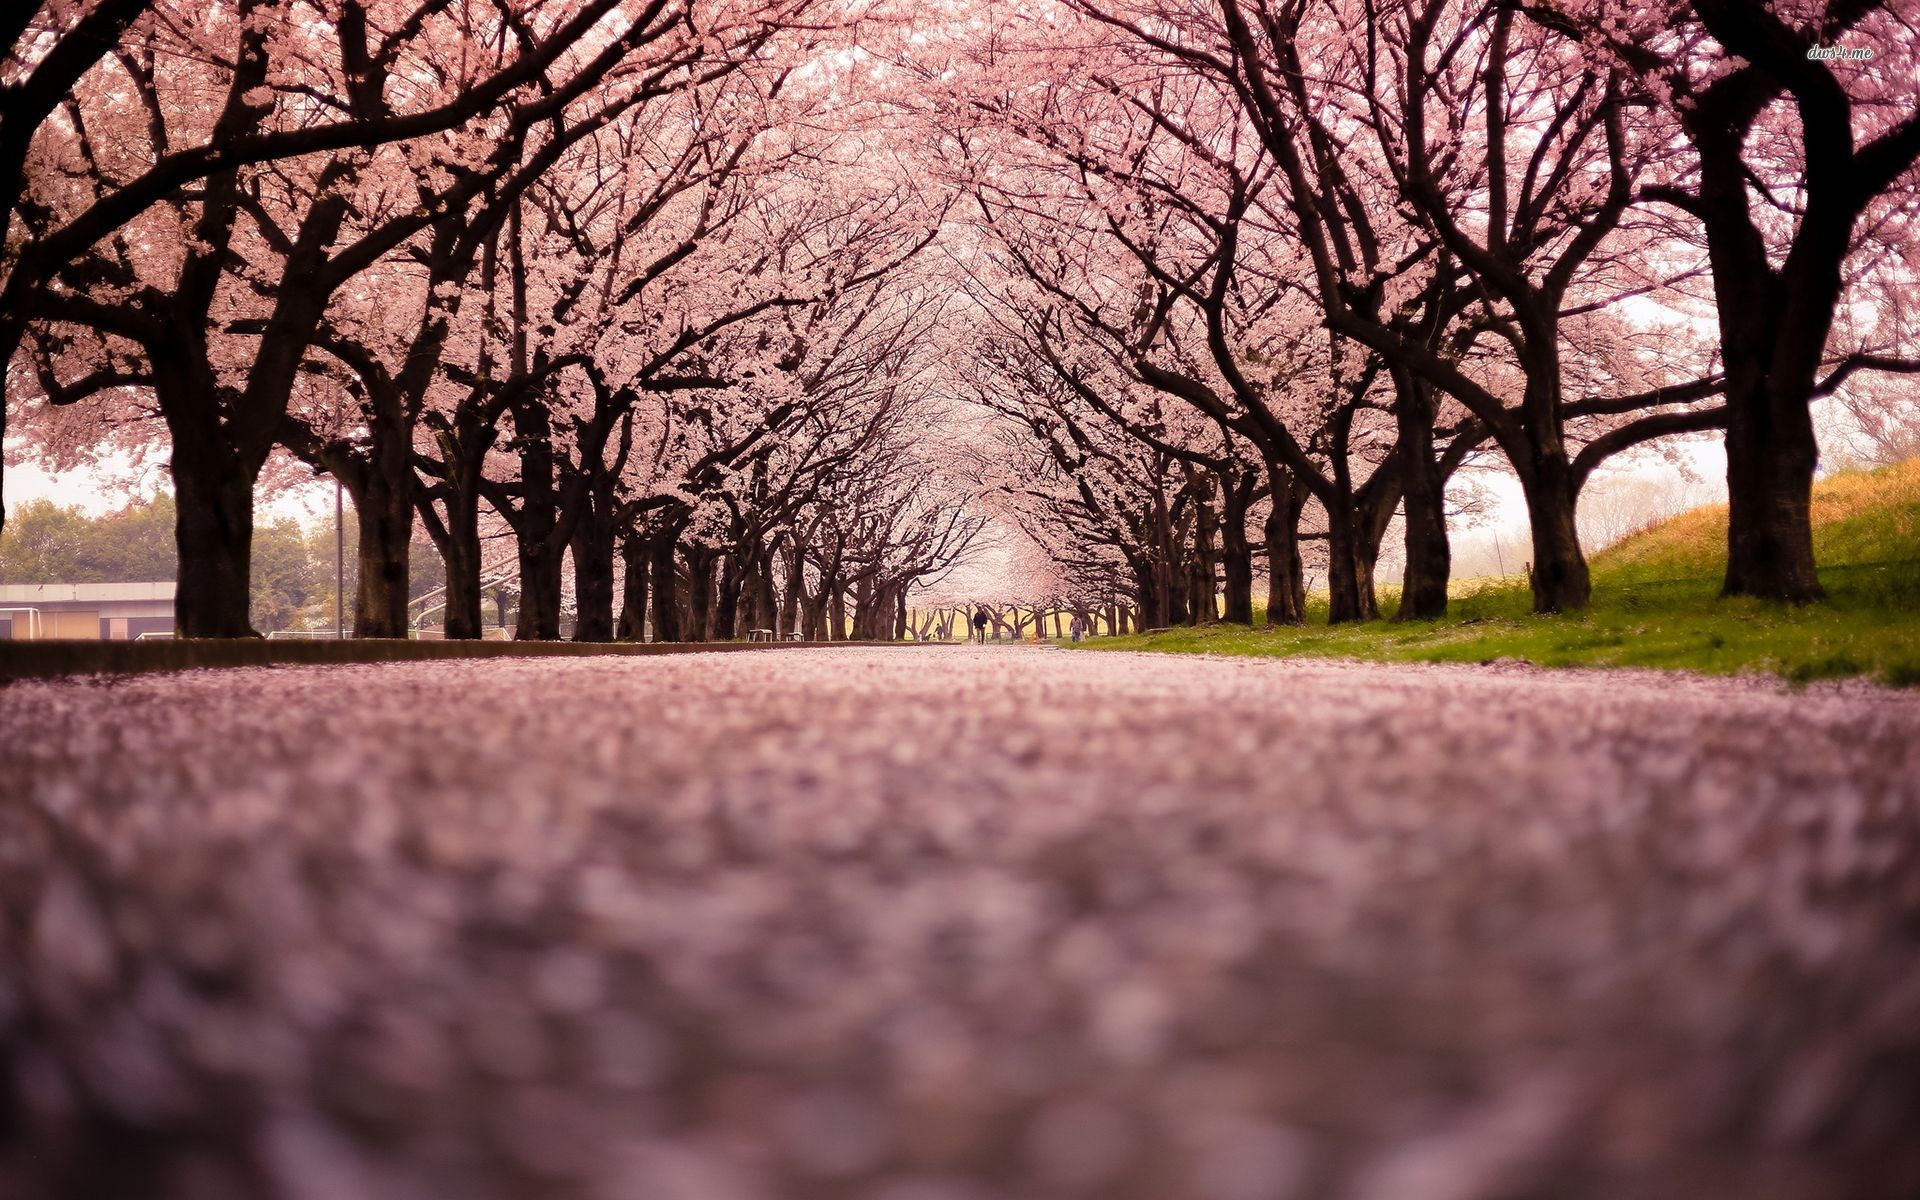 Cherry+Blossoms+in+Japan | Cherry Blossom- Fuji Mountain, Japan